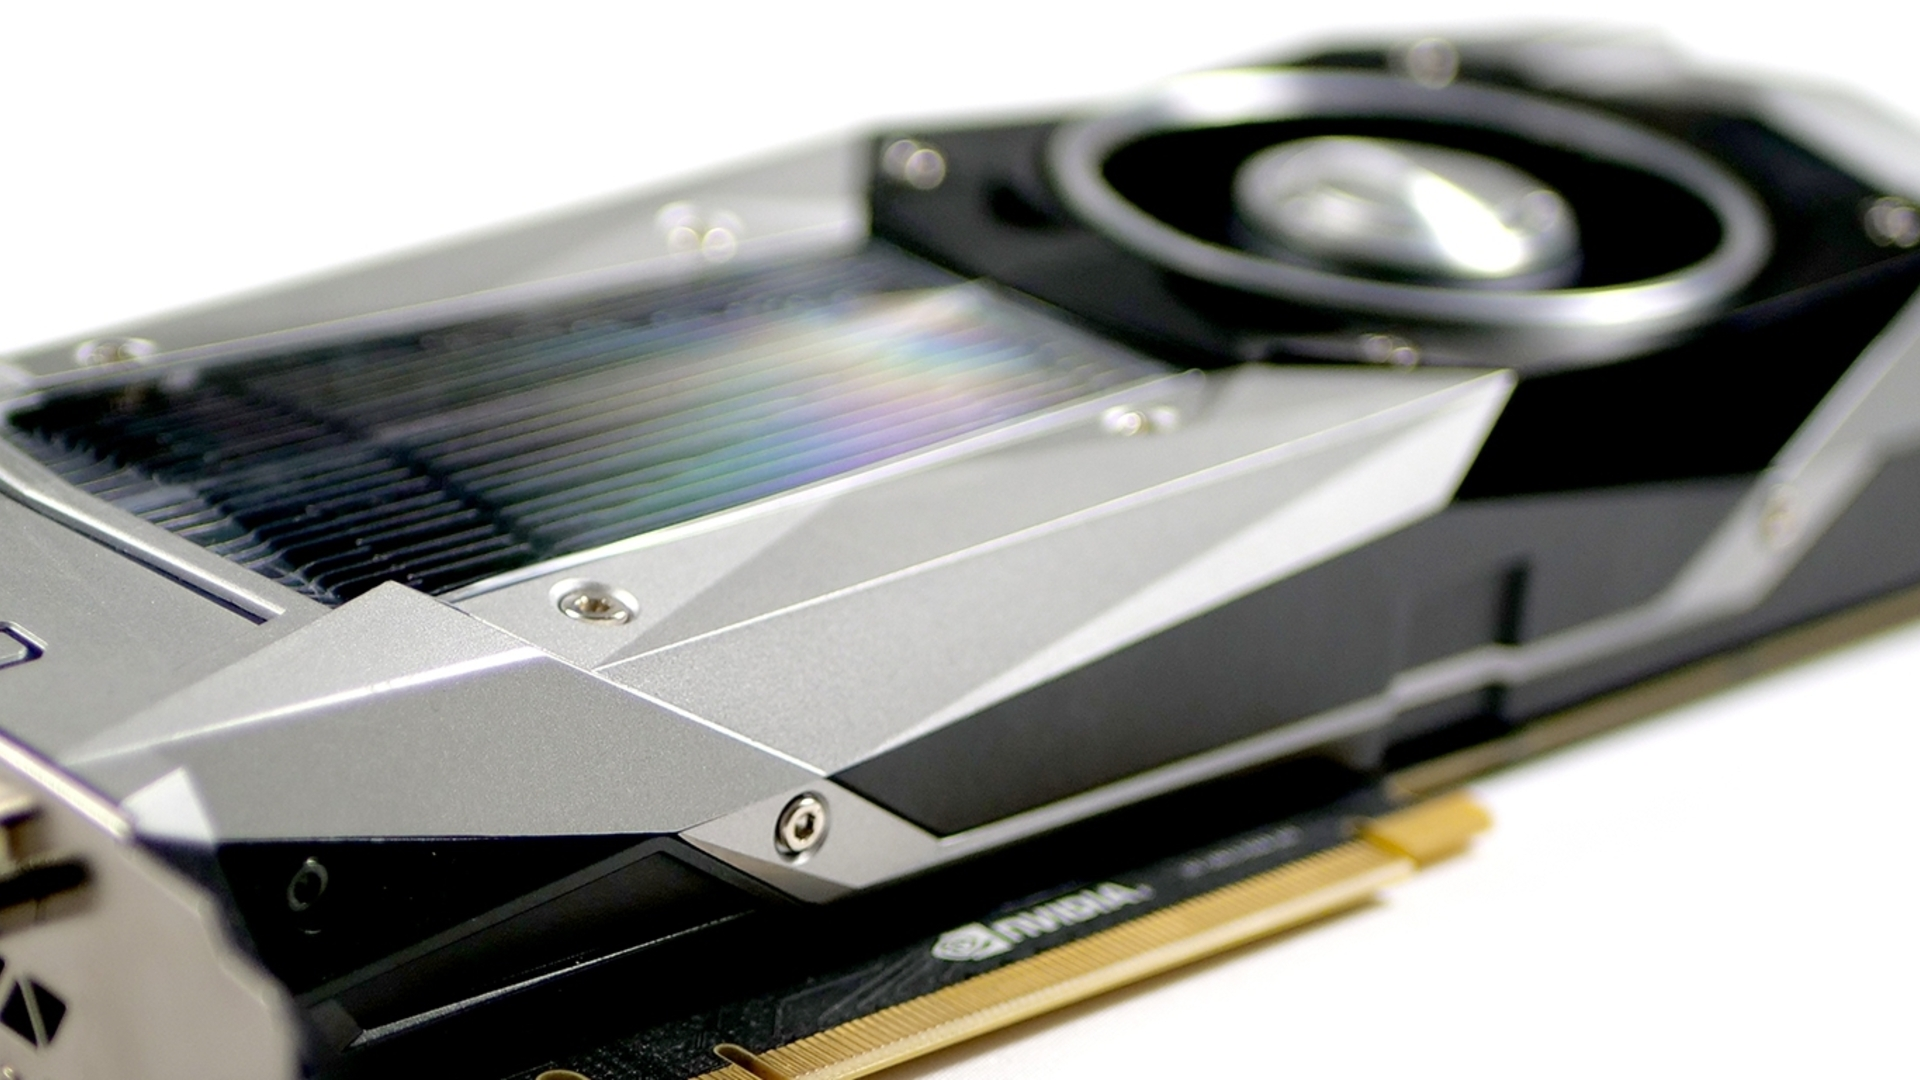 Best Graphics Cards 2018 Every Major Nvidia And Amd Gpu Tested Ceiling Light Wiring Overclockers Uk Forums